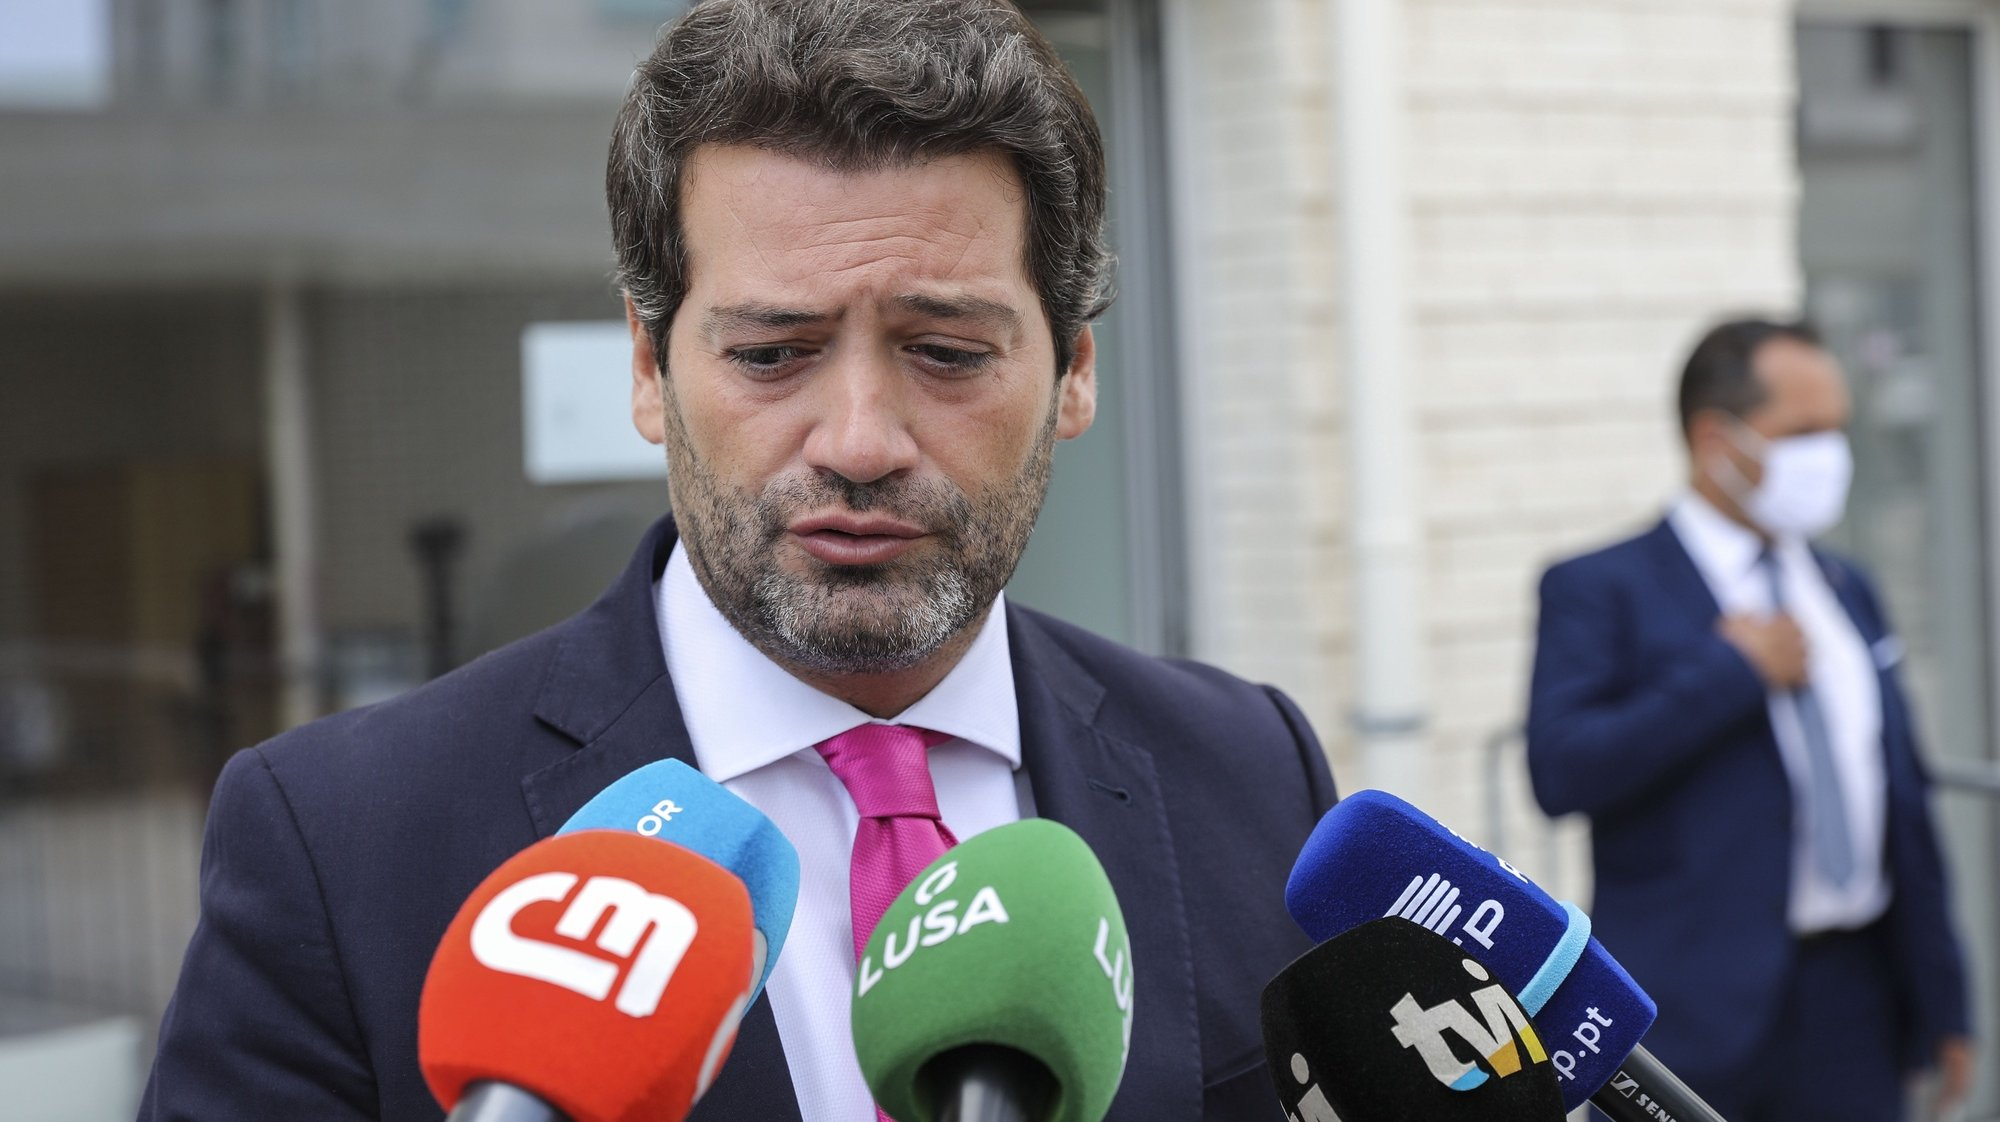 Portuguese national conservative, right-wing populist political party Chega leader André Ventura talks to the press after voting for local elections 26 septeber 2021 in Lisbon. More than 9.3 million electors can vote in the local elections in Portugal. MIGUEL A. LOPES LUSA